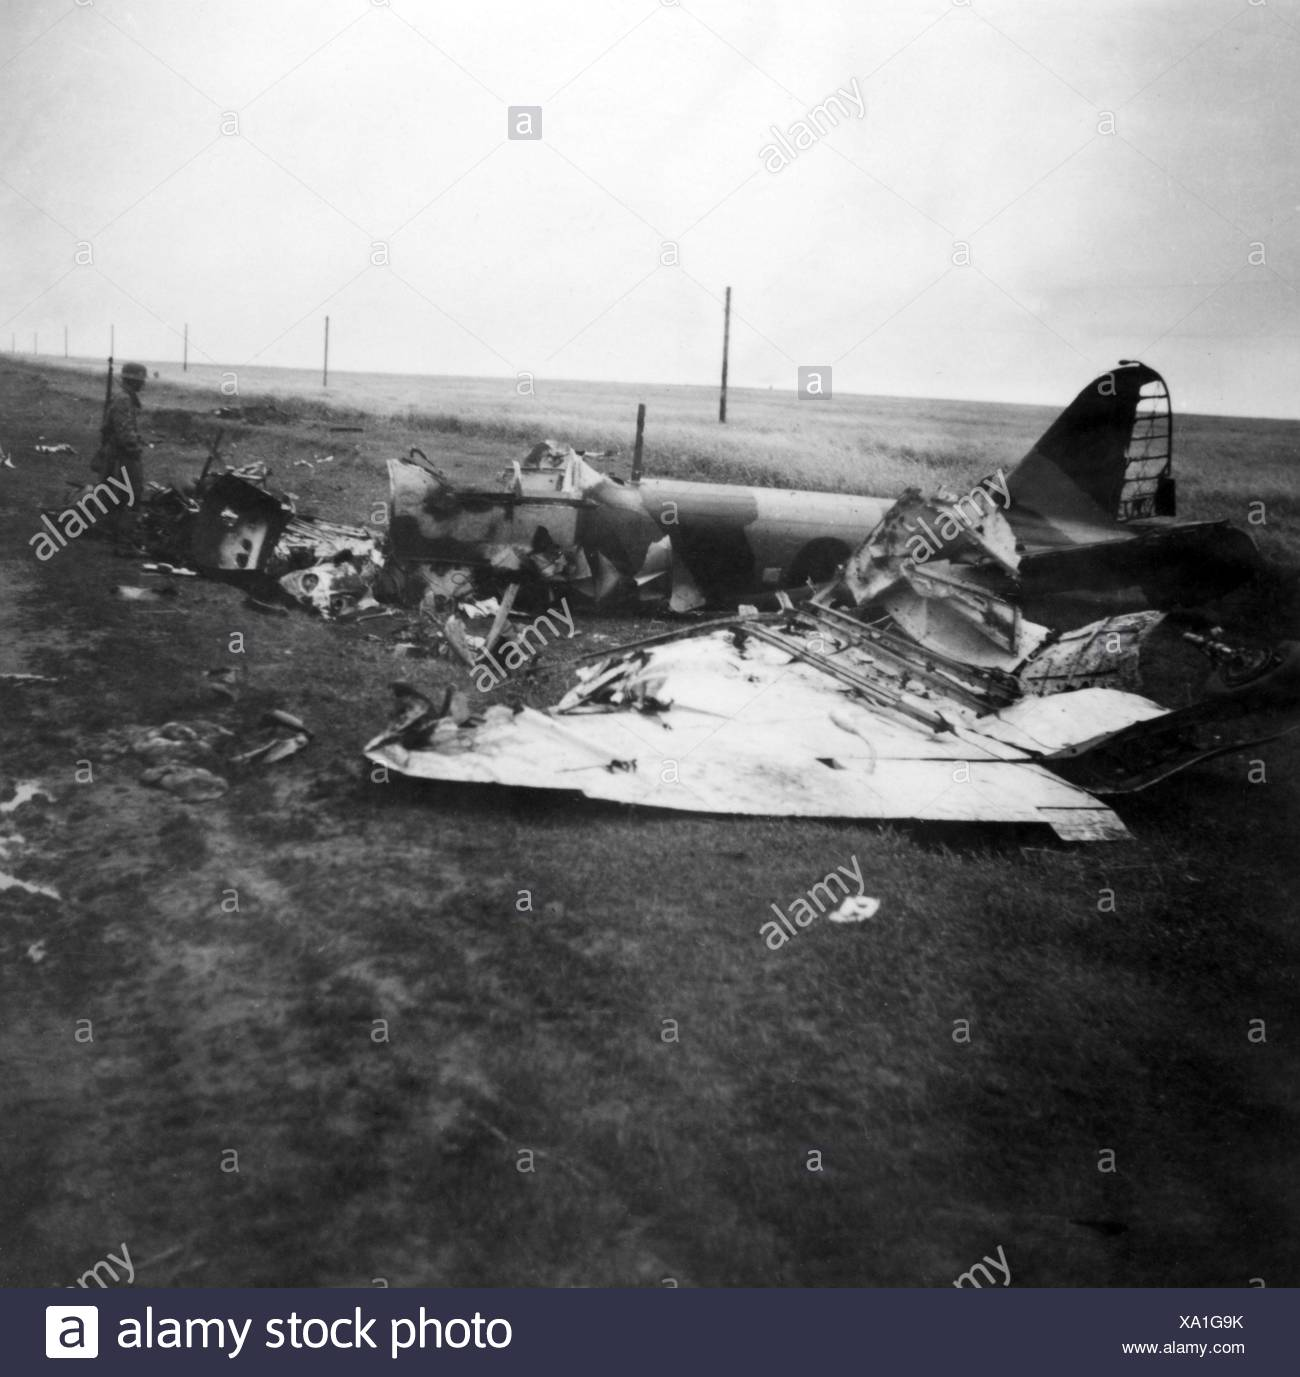 events, Second World War / WWII, aerial warfare, aircraft, crashed / damaged, German soldier standing beside a shot down Soviet ground attack aircraft Ilyushin Il-2, Ukraine, 1941, Additional-Rights-Clearences-Not Available Stock Photo